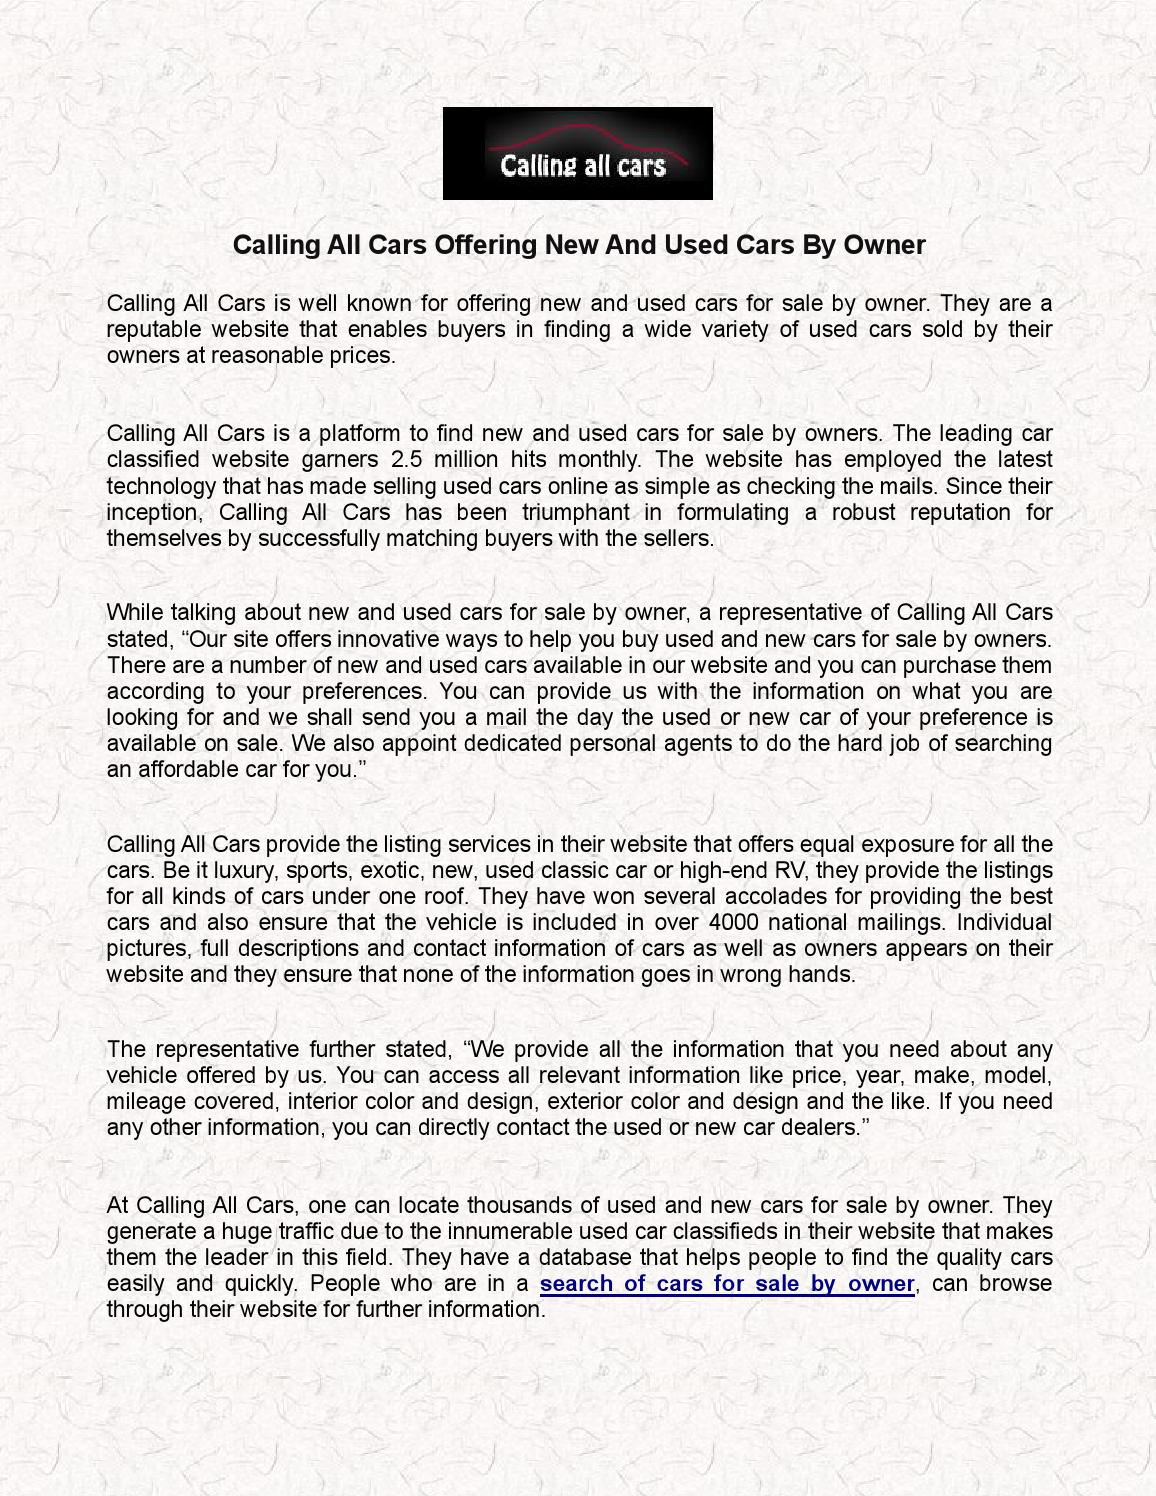 Calling all cars offering new and used cars by owner by cacars - issuu